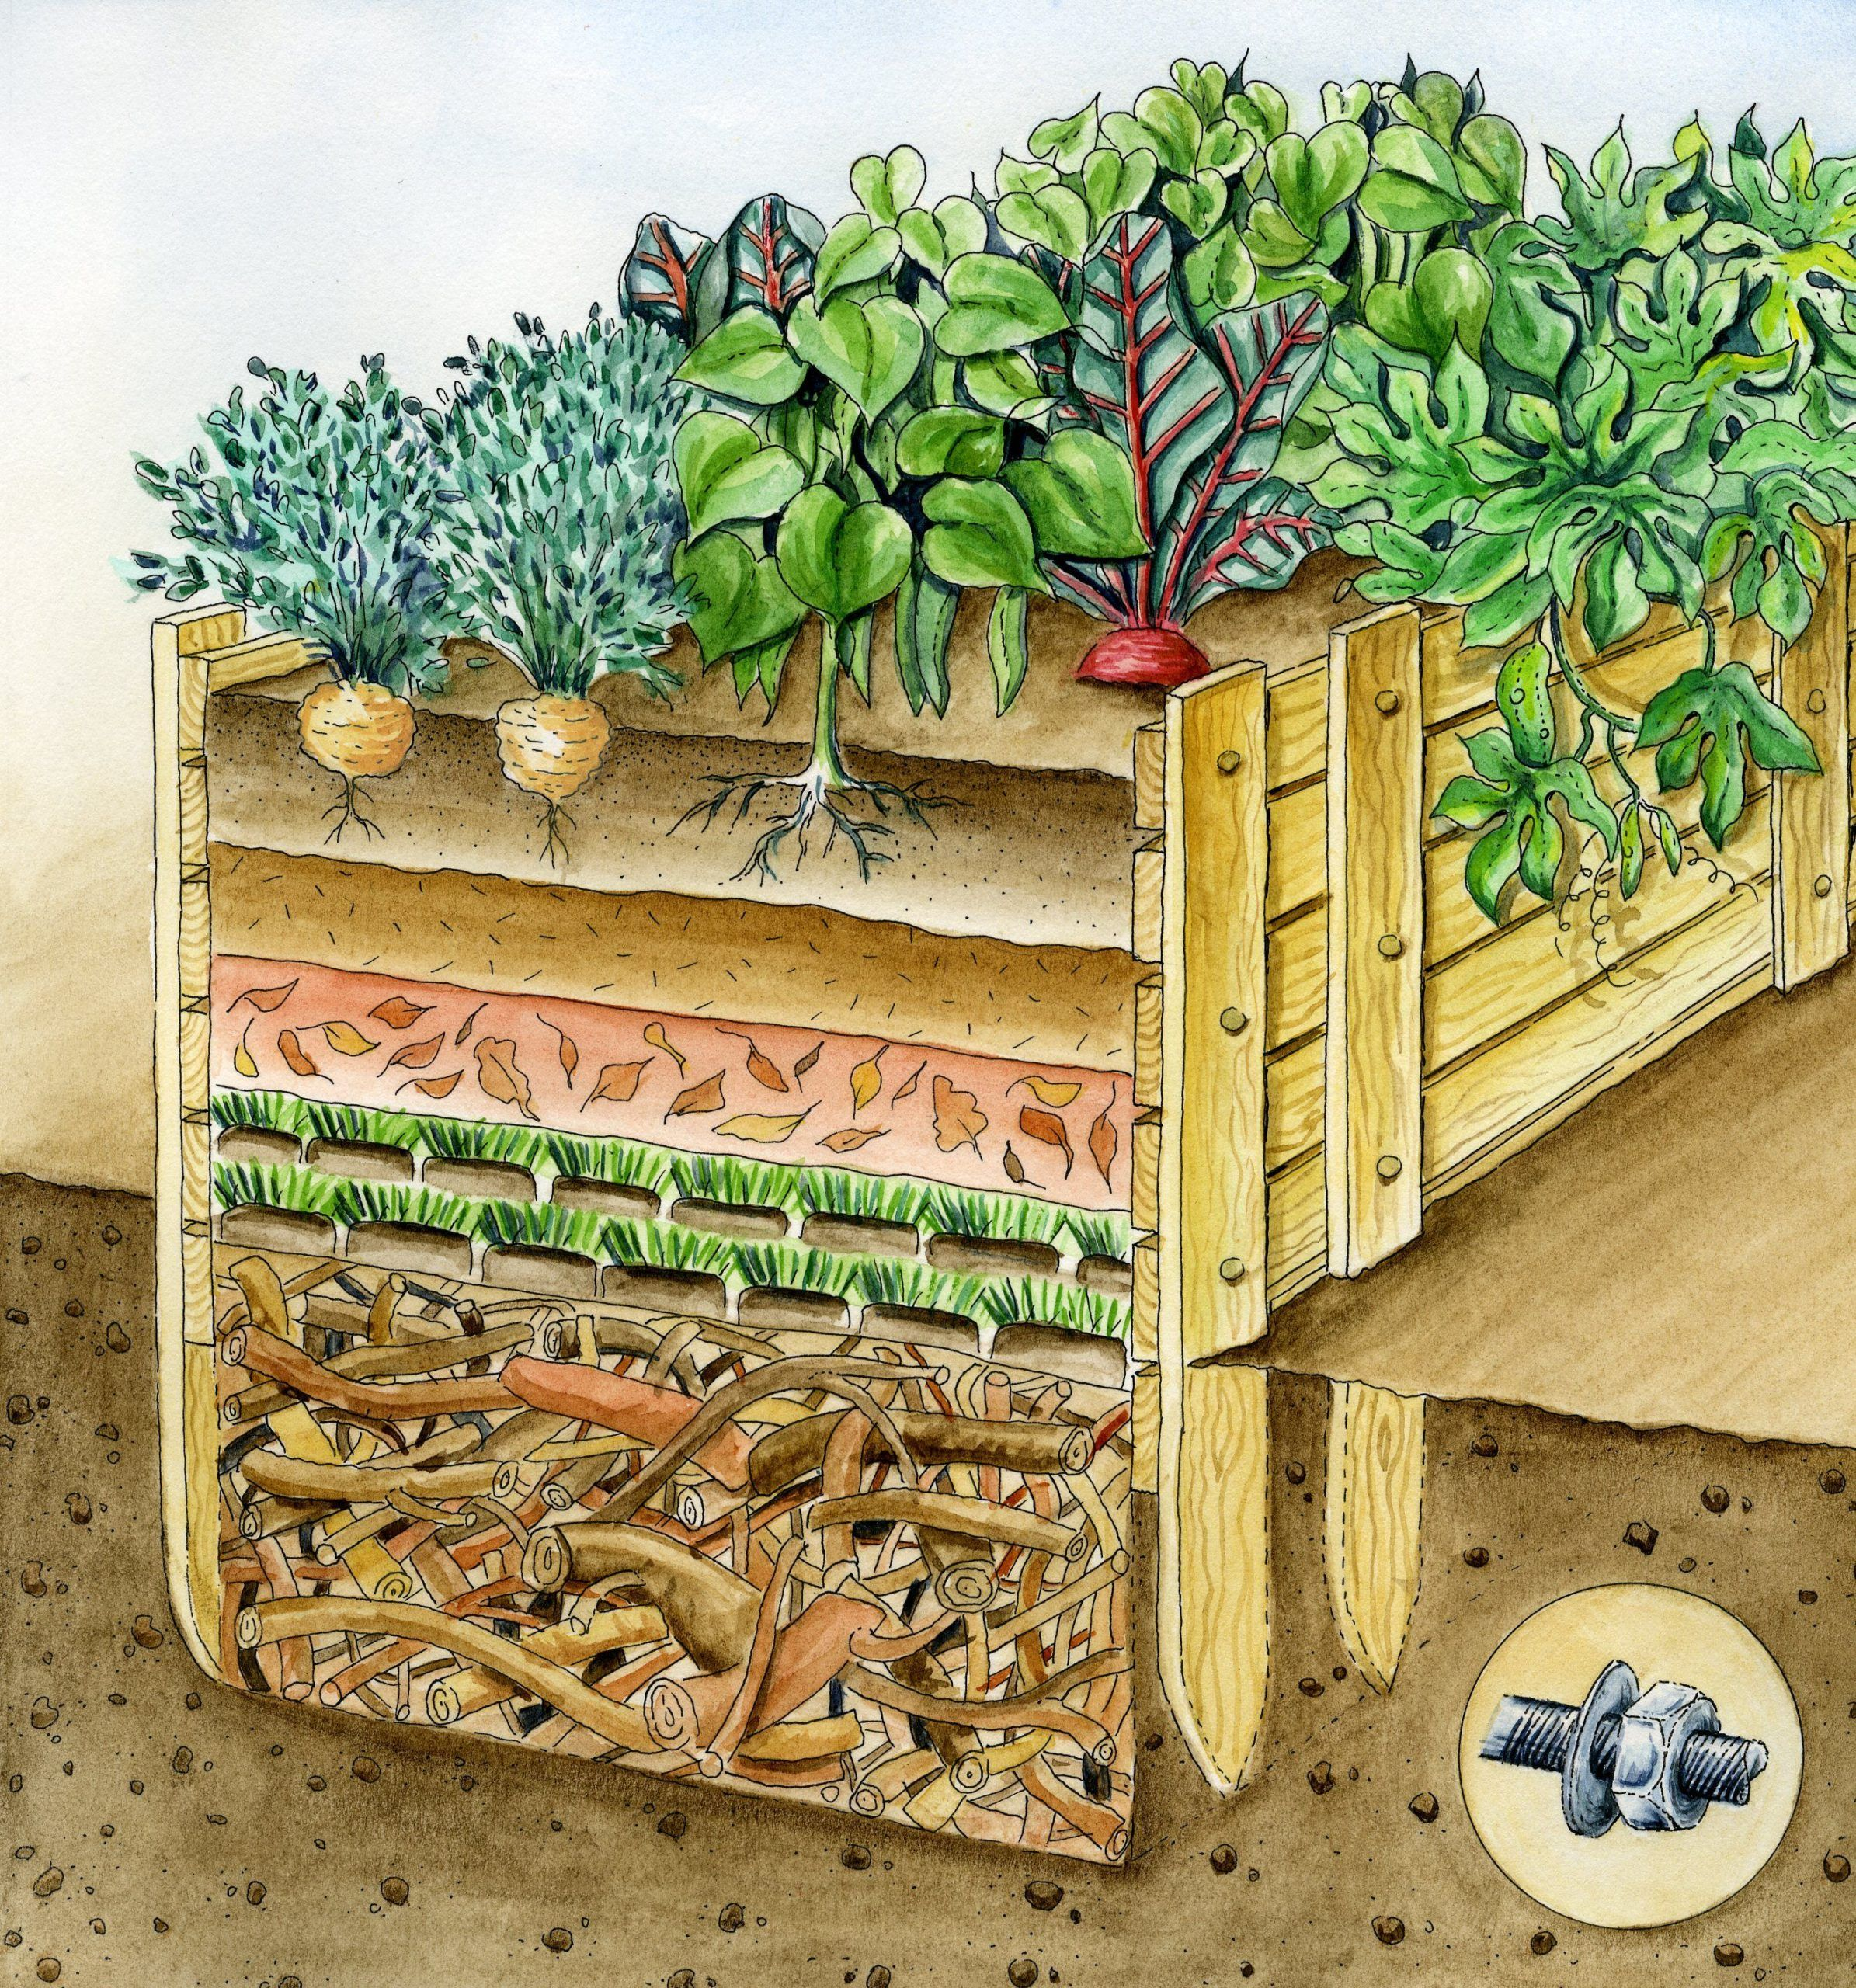 Filling Raised Beds These layers increase harvest